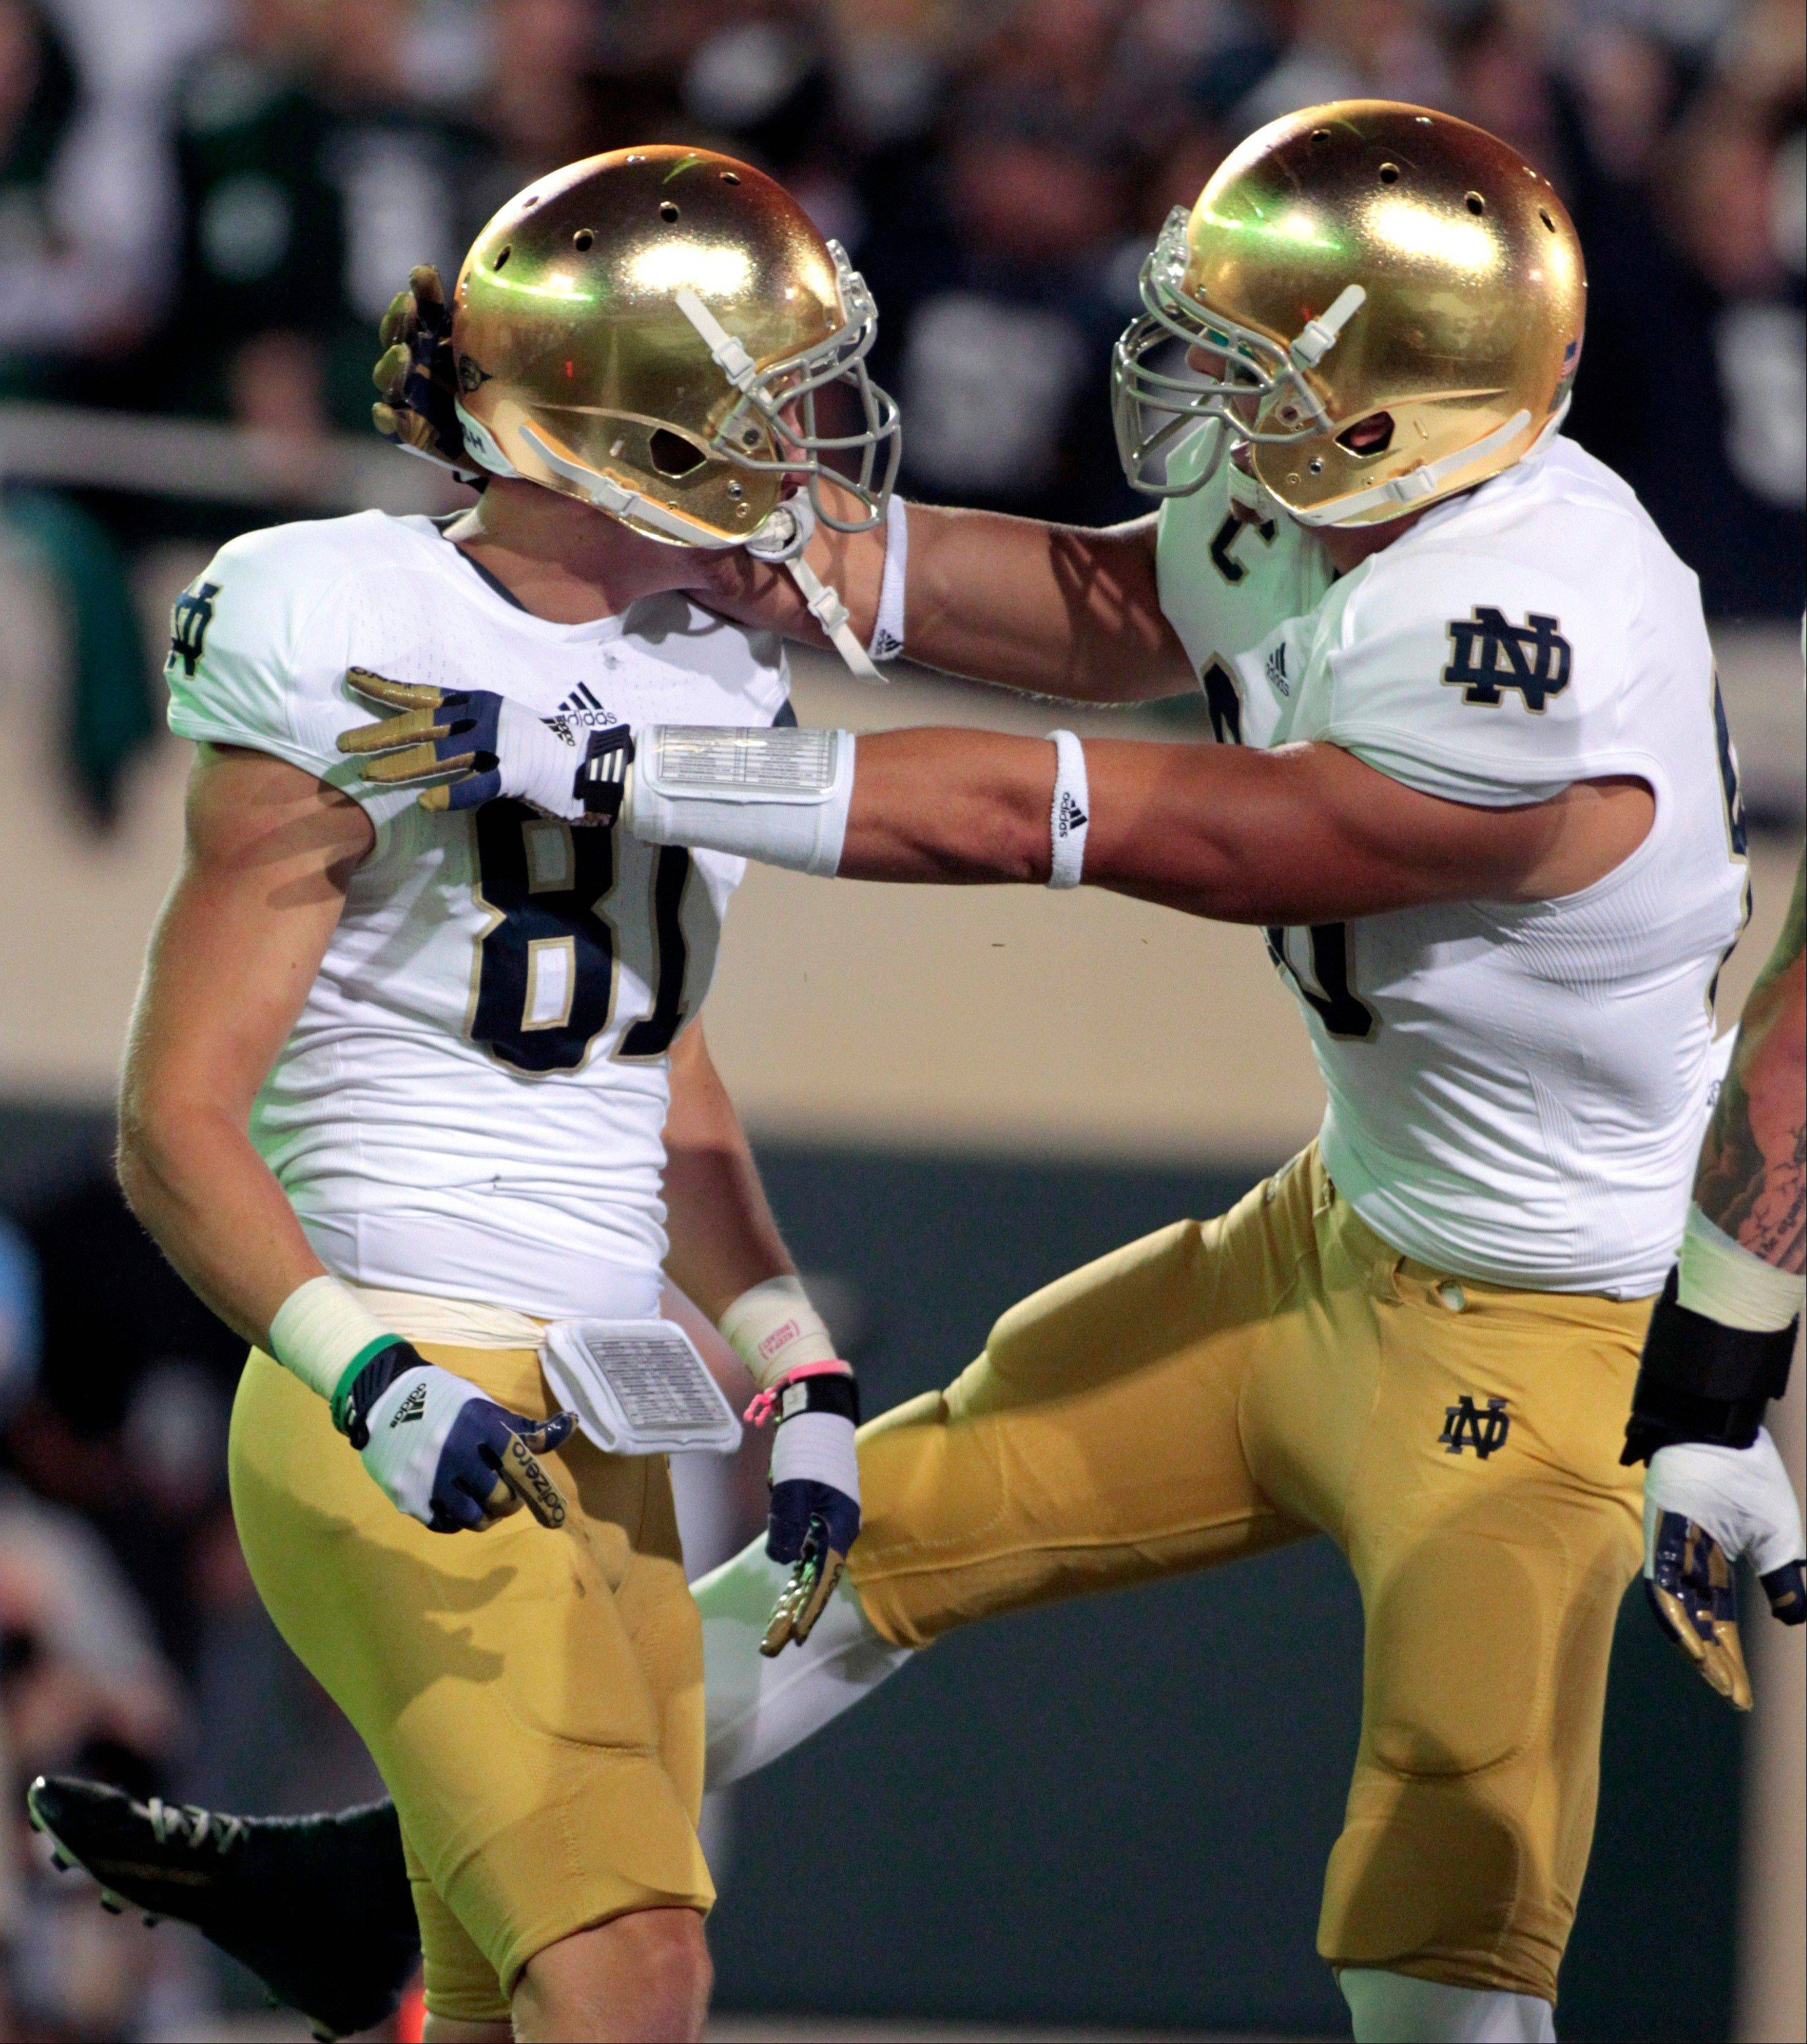 Notre Dame's John Goodman, left, and Tyler Eifert celebrate Goodman's touchdown reception during the first quarter of an NCAA college football game against Michigan State, Saturday, Sept. 15, 2012, in East Lansing, Mich.